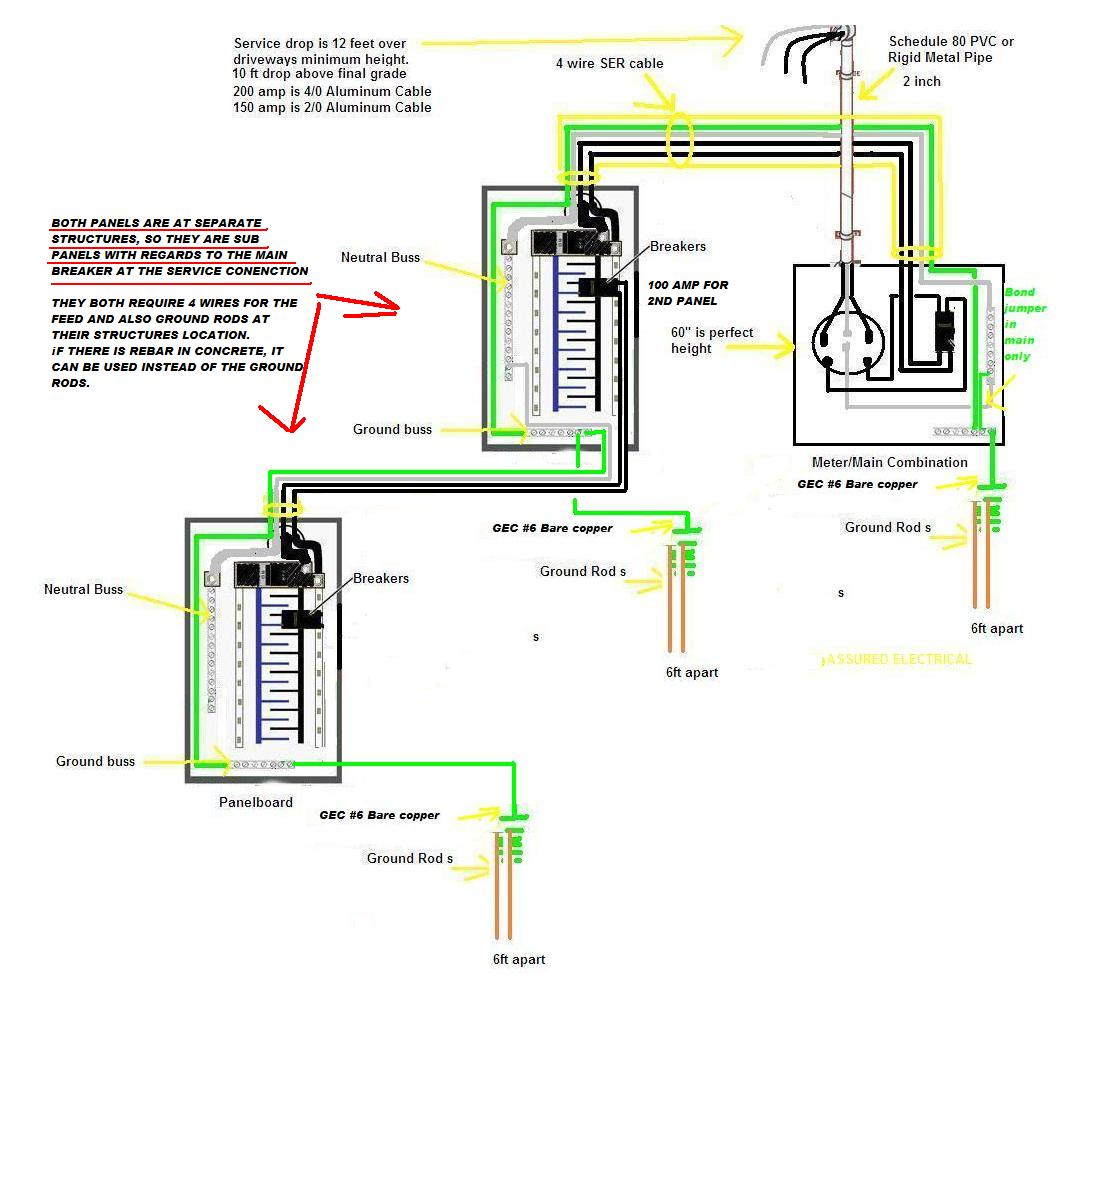 100 amp electrical service overhead with Install 200   Service Diagram on Forum besides Selecting Proper Size Welding Cables likewise Install 200   Service Diagram as well Service Entrance Diagram moreover 8cjzp Need Upgrade Meter Base 60 120 Live.